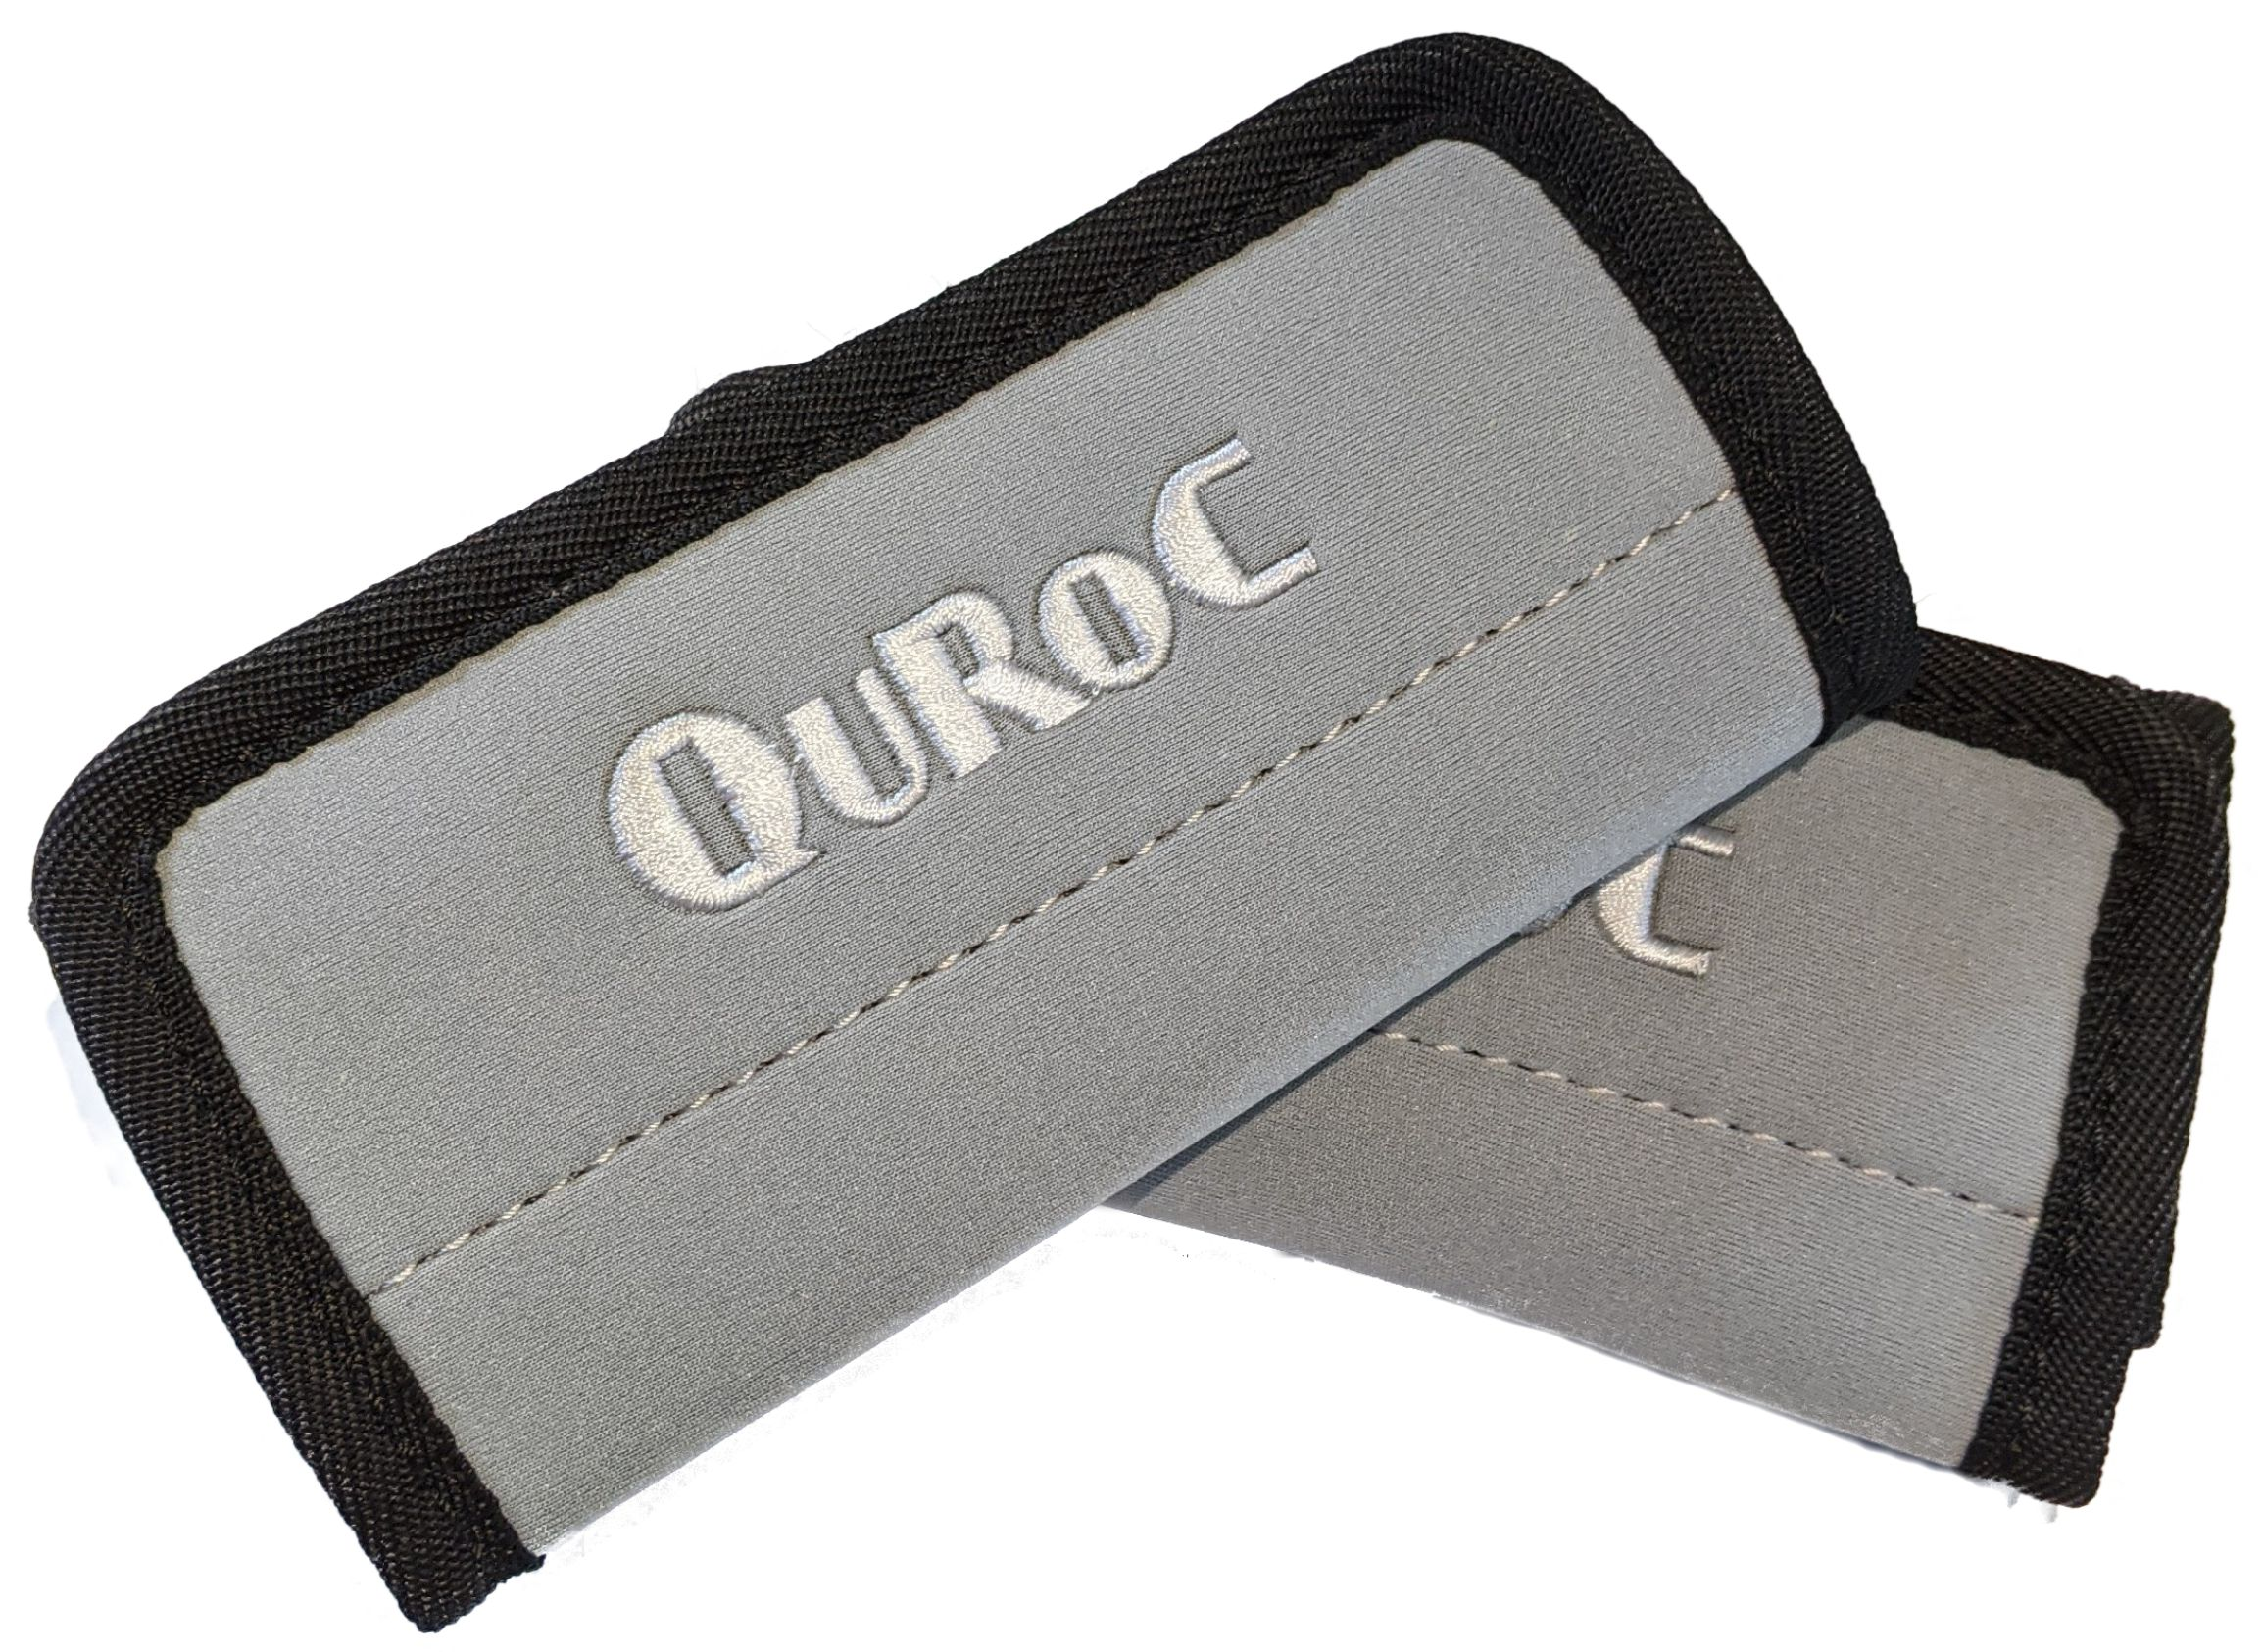 Quroc Velcro SUP Bottle Holder